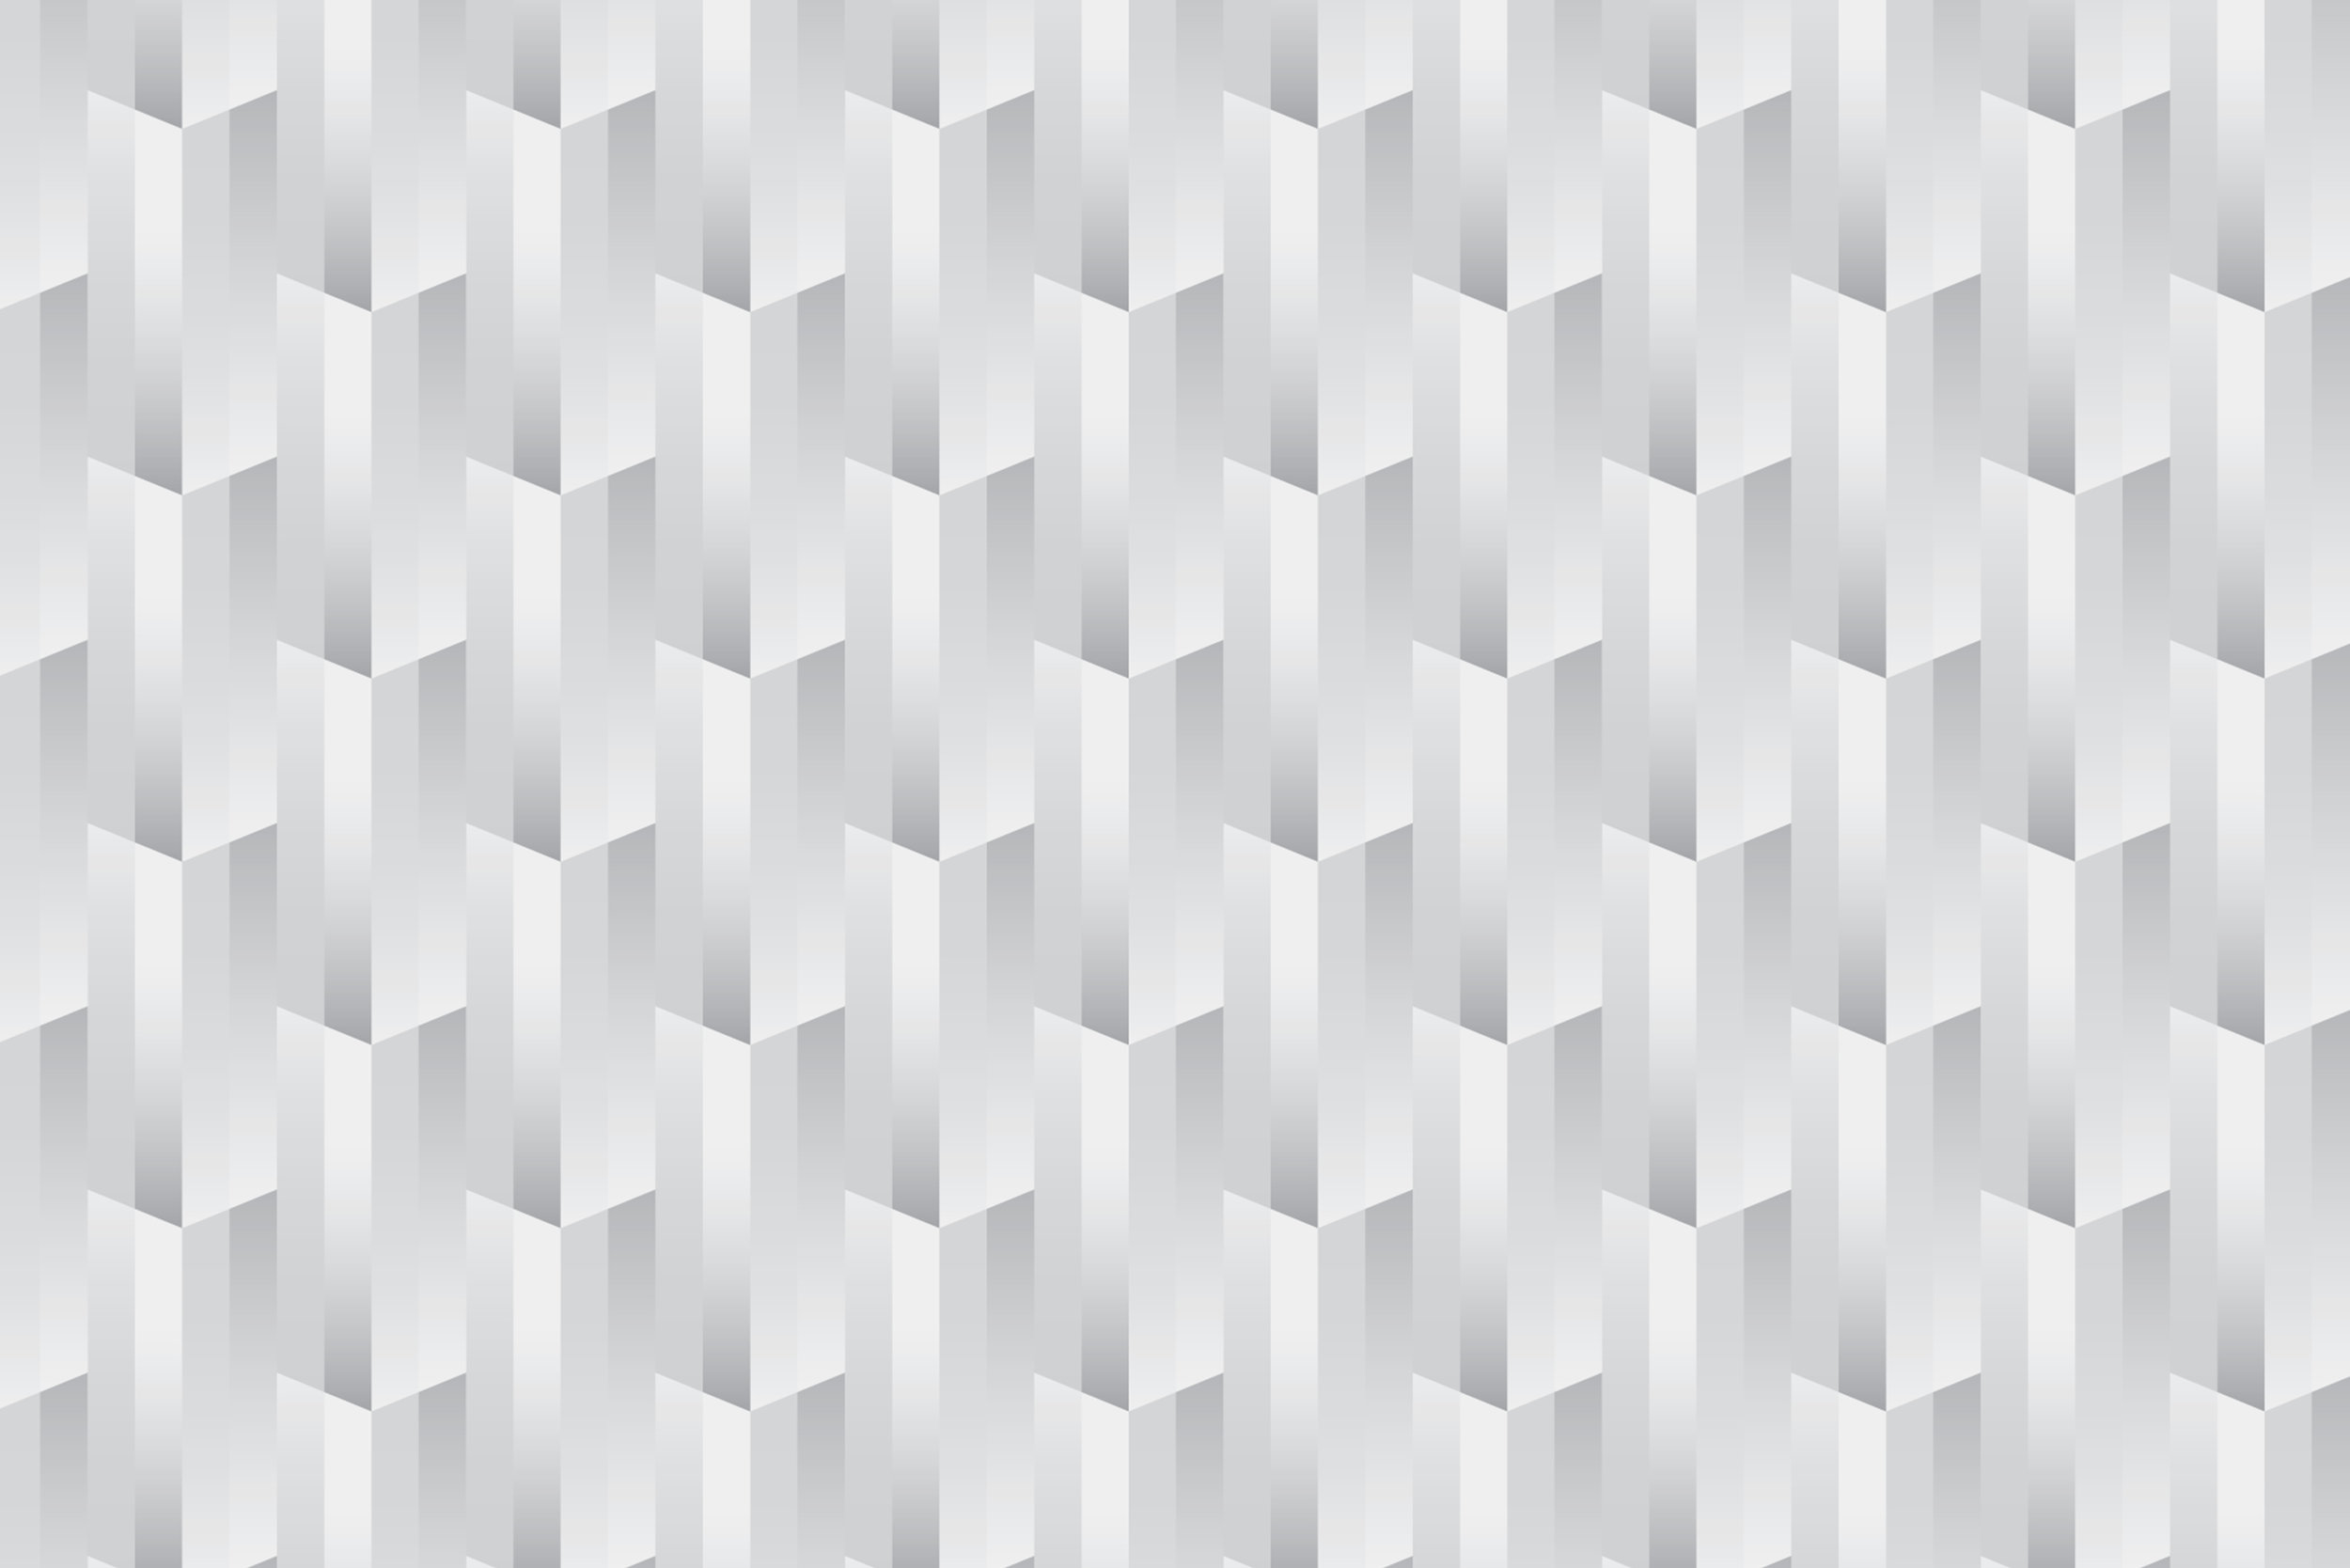 founder's - VIEW COLLECTIONContemporary patterns in neutral tones